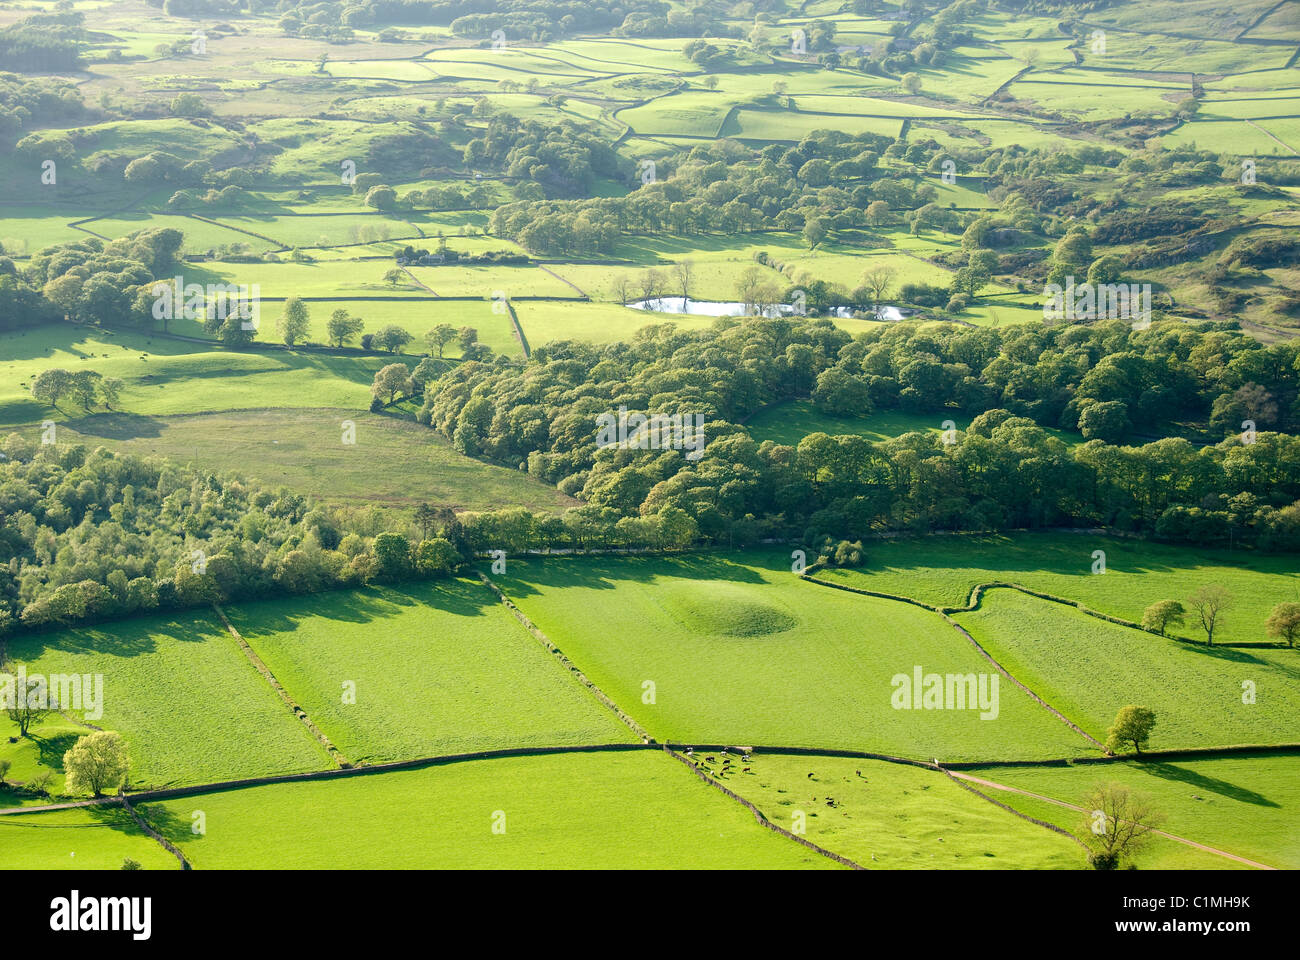 Pastures and woodland from above, Wasdale Valley, Lake District National Park, Cumbria, England, UK - Stock Image